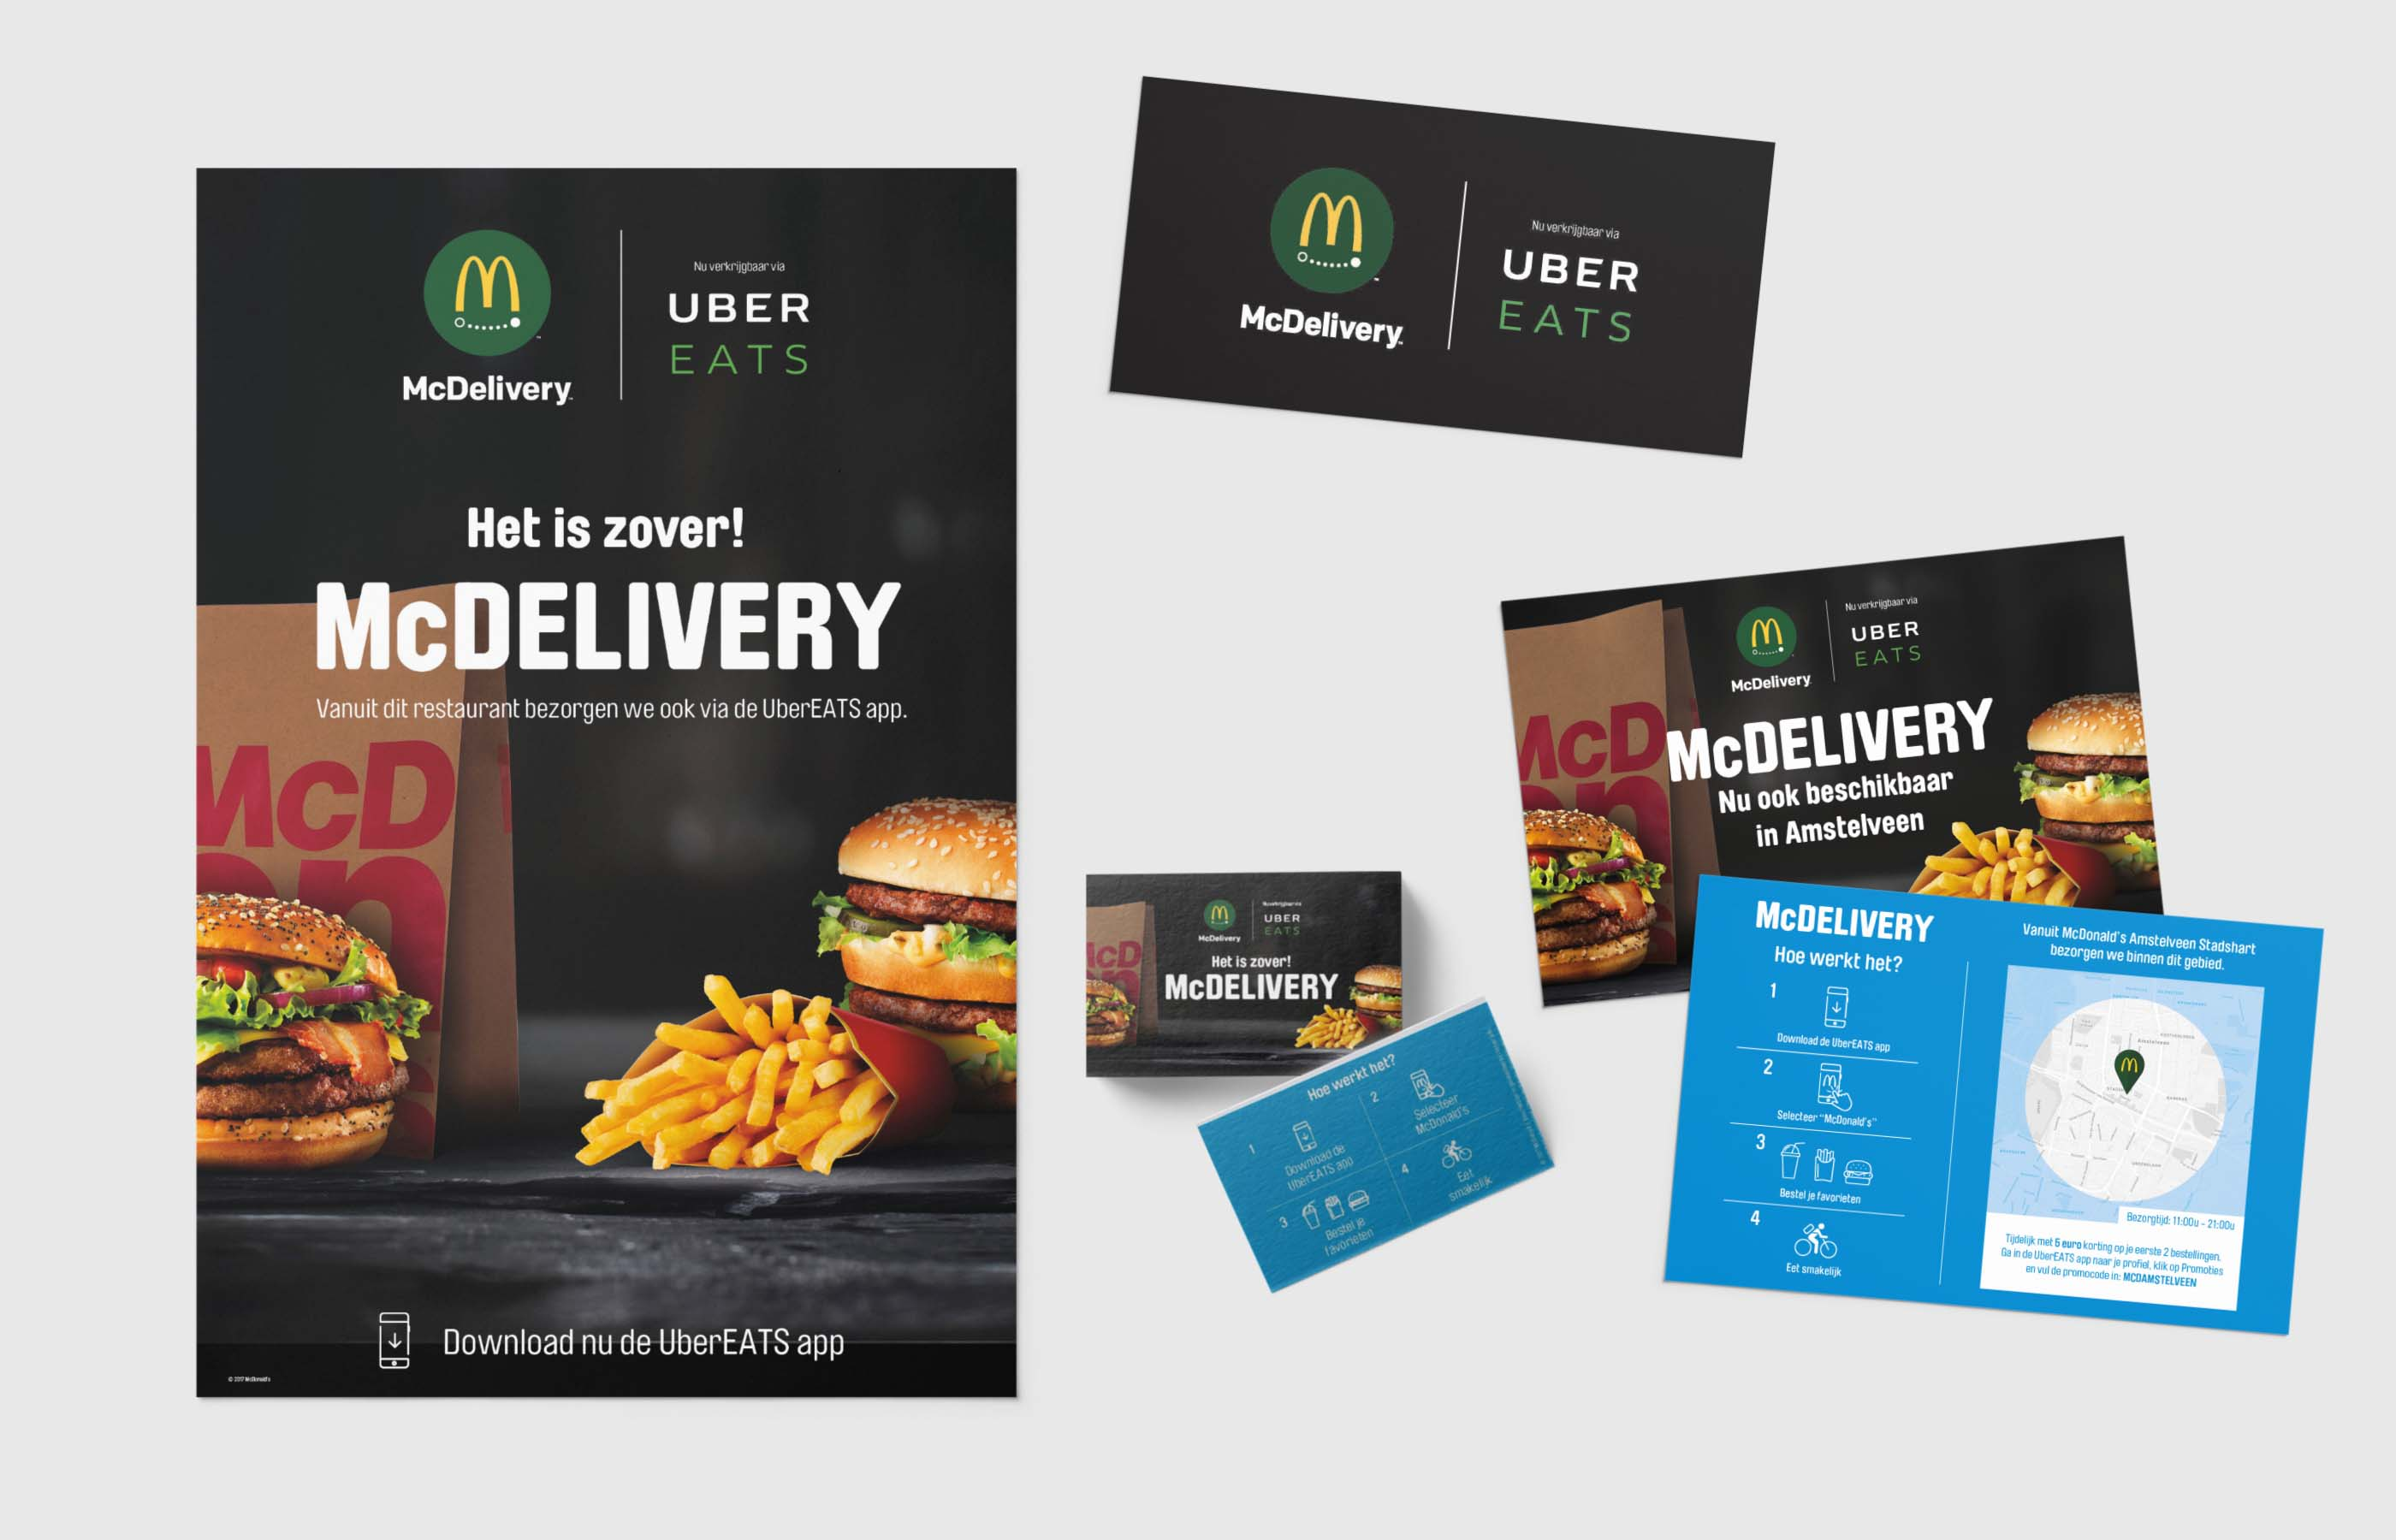 mcdelivery-2